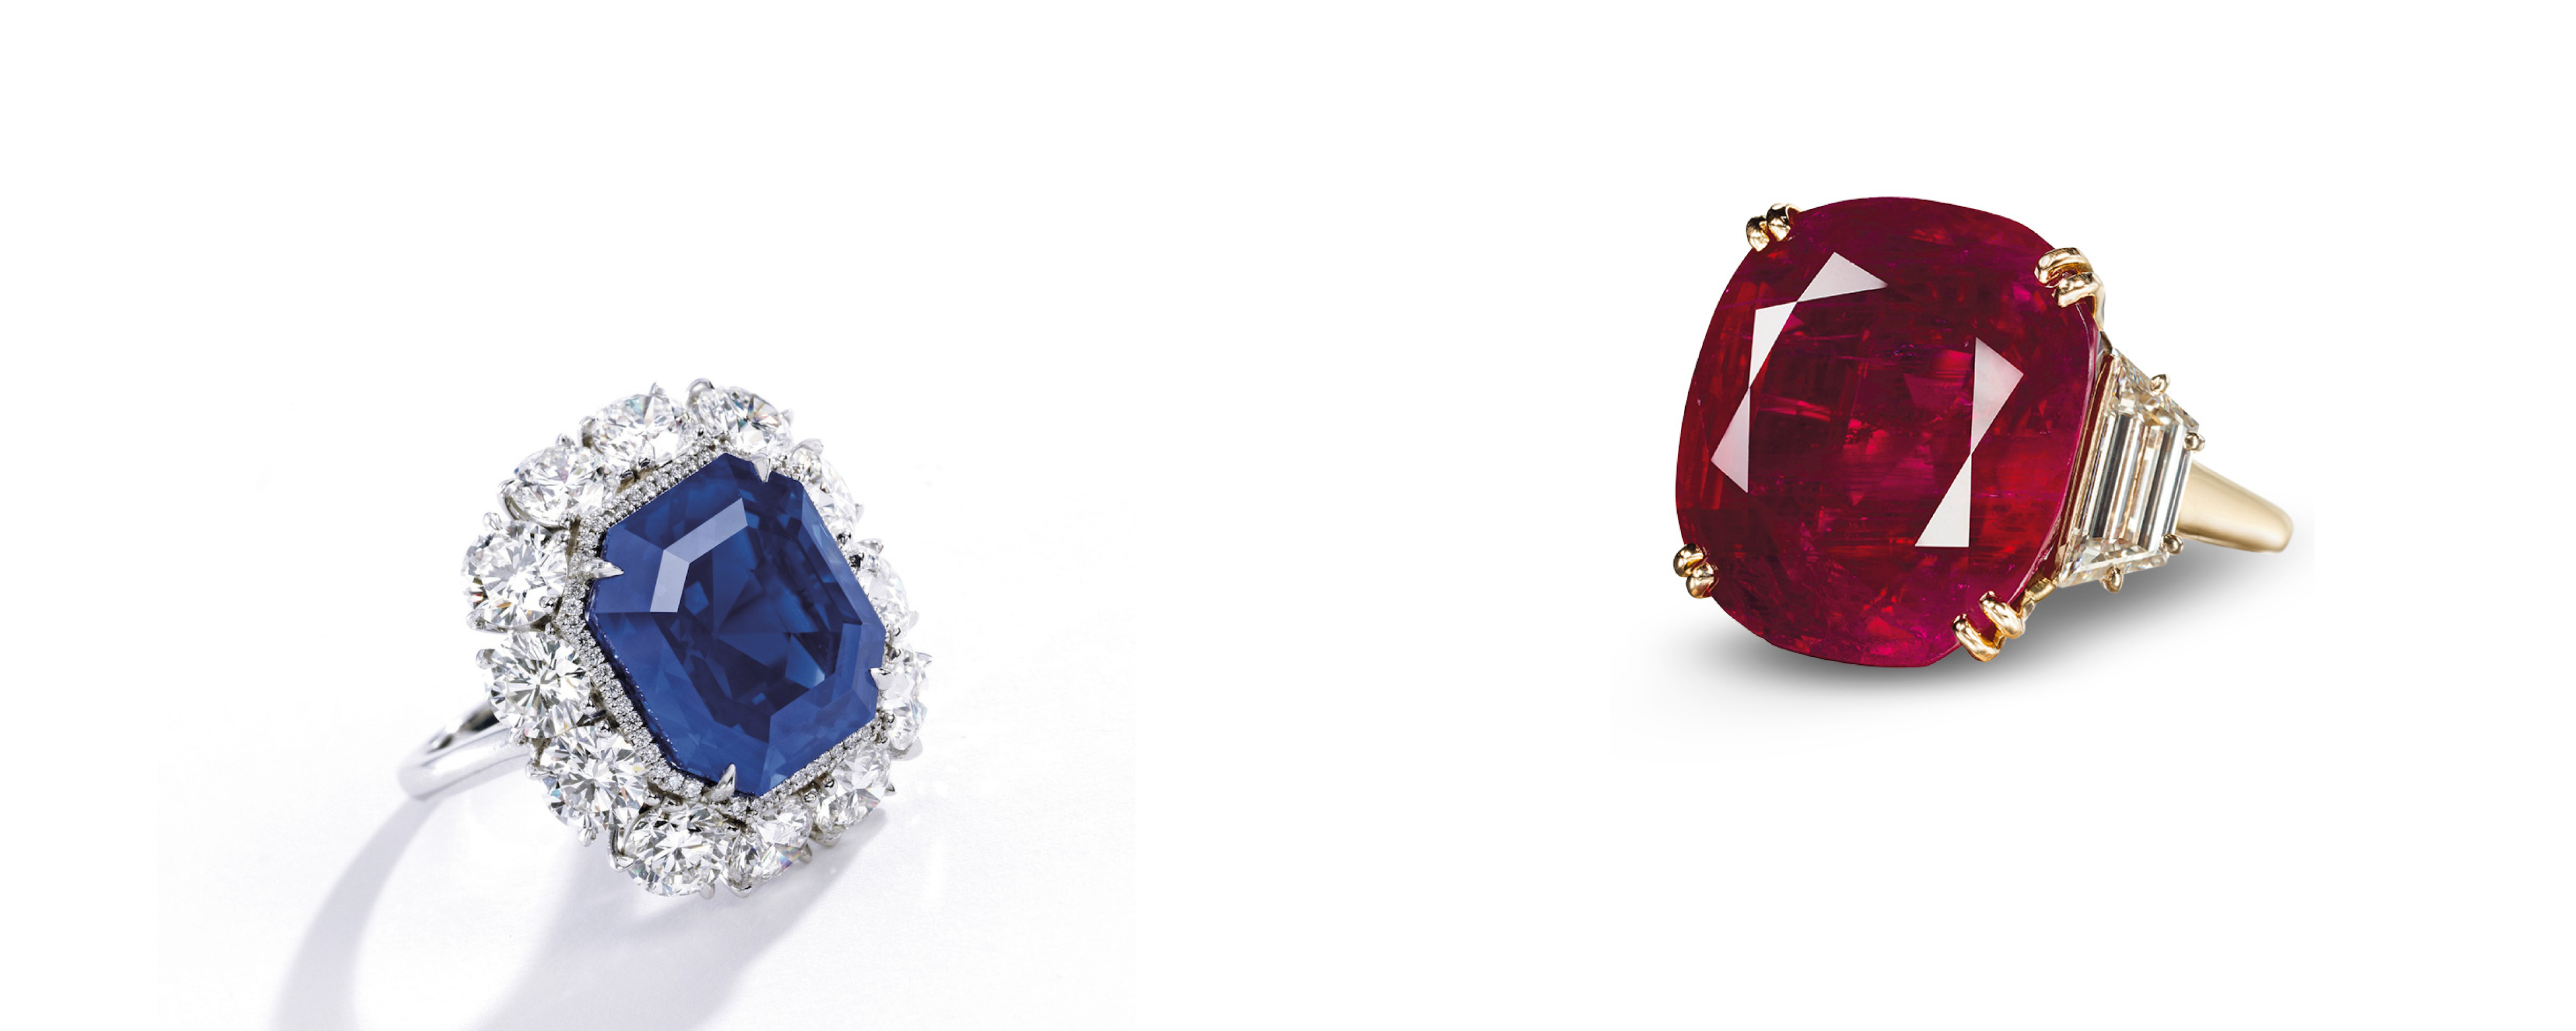 Under the Hammer  |  Ruby & Sapphire Auction Records